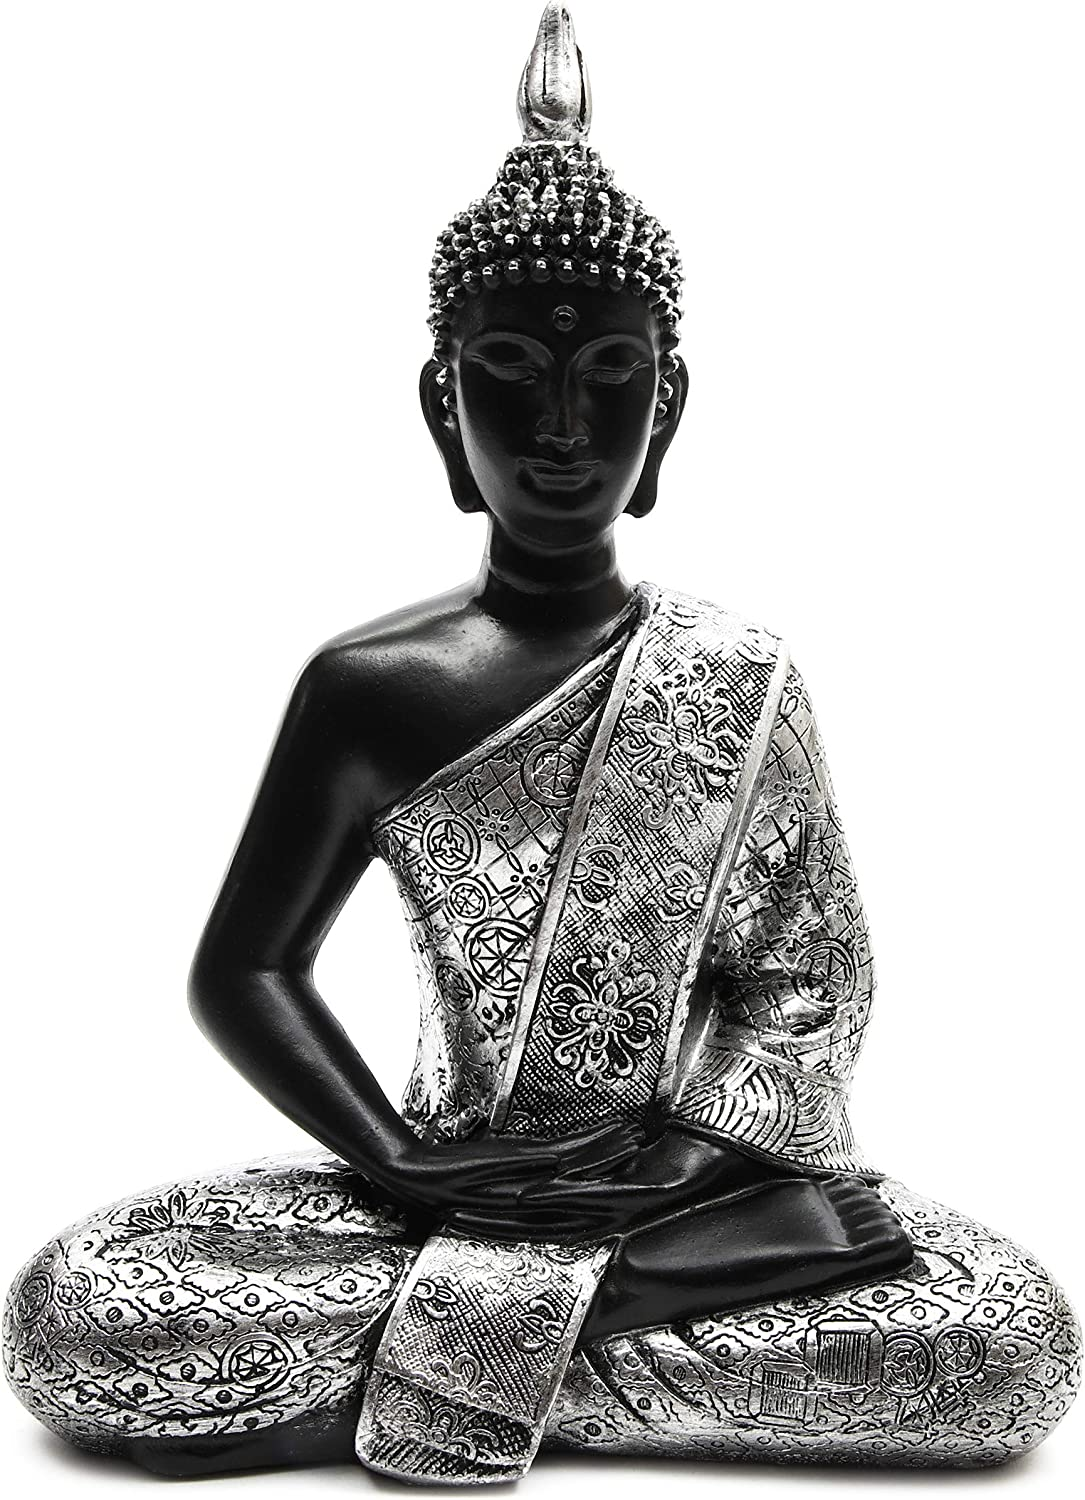 Juvale Decorative Seated Meditating Buddha Statue for Home and Garden (11 Inches)